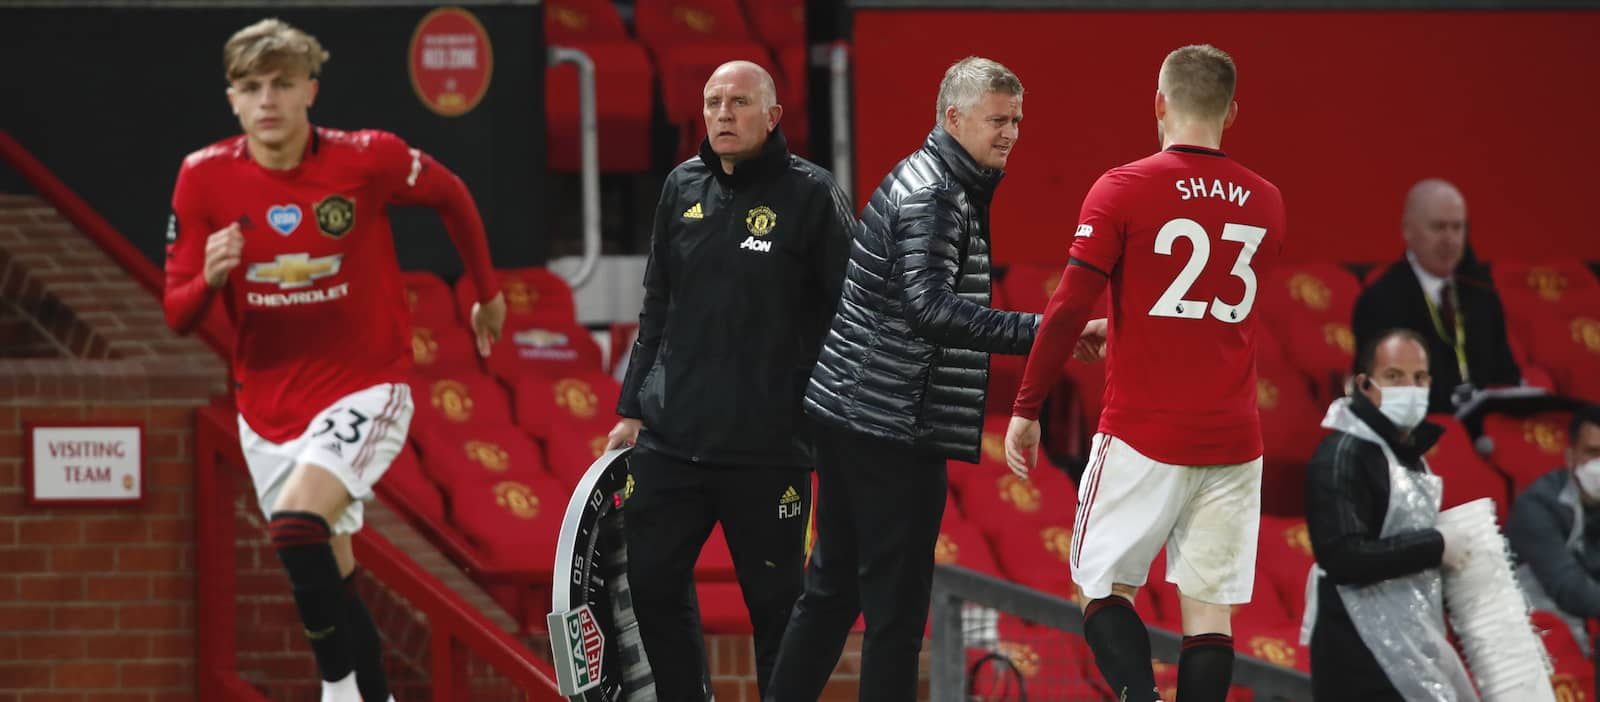 Luke Shaw out but others looking strong: Ole Gunnar Solskjaer provides FA Cup team news